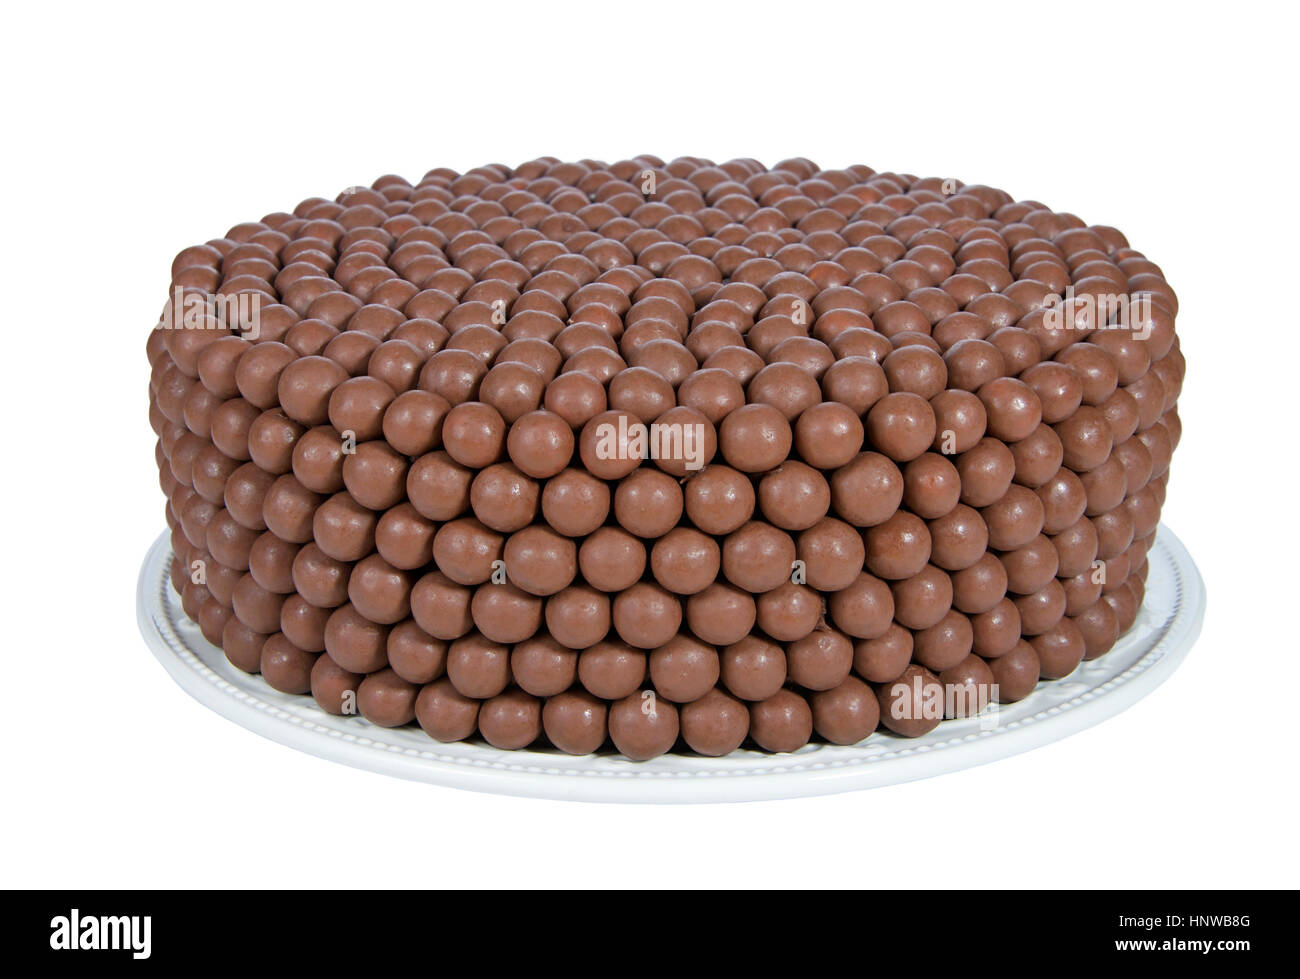 Chocolate Birthday Cake decorated with candy malt balls. Fast and easy home made cake for children or adult birthday - Stock Image